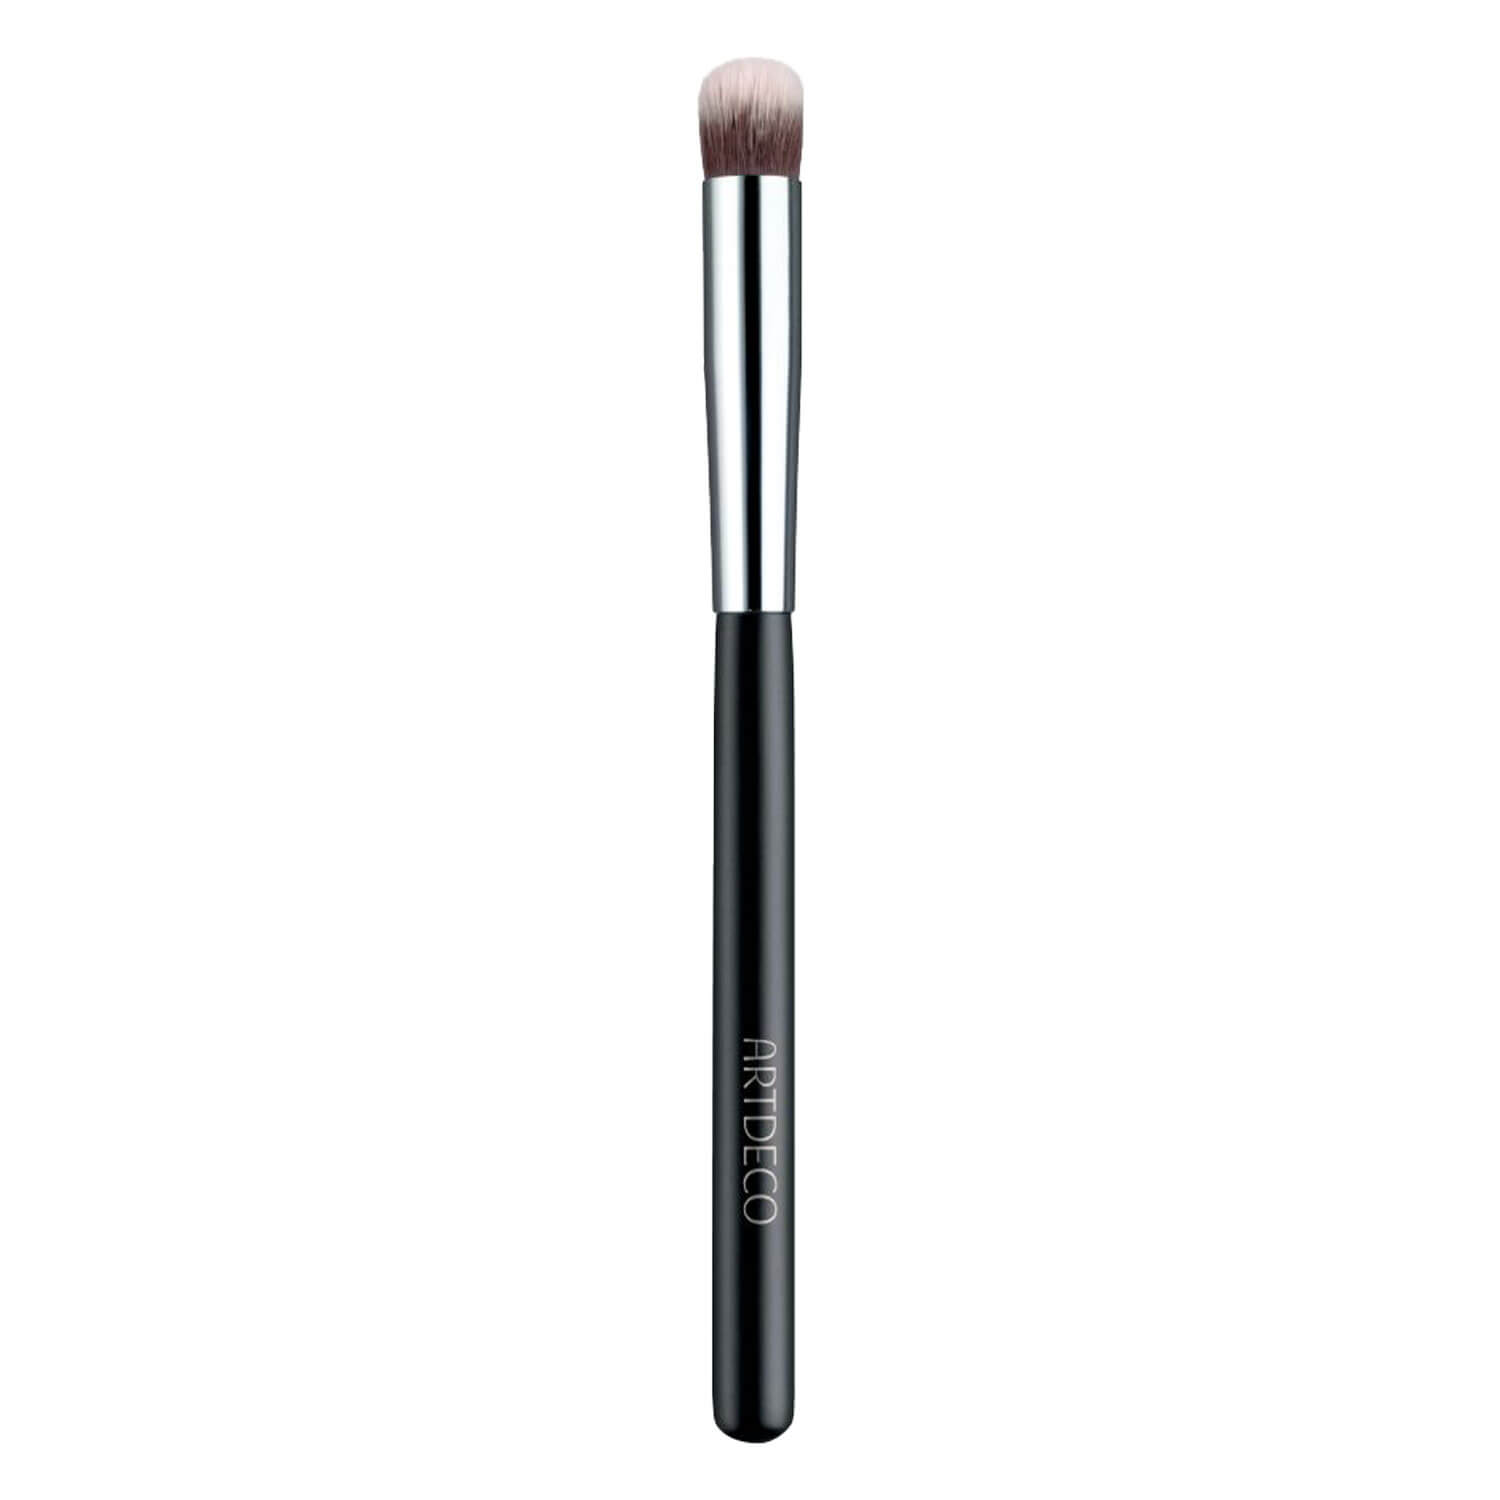 Artdeco Tools - Concealer & Camouflage Brush